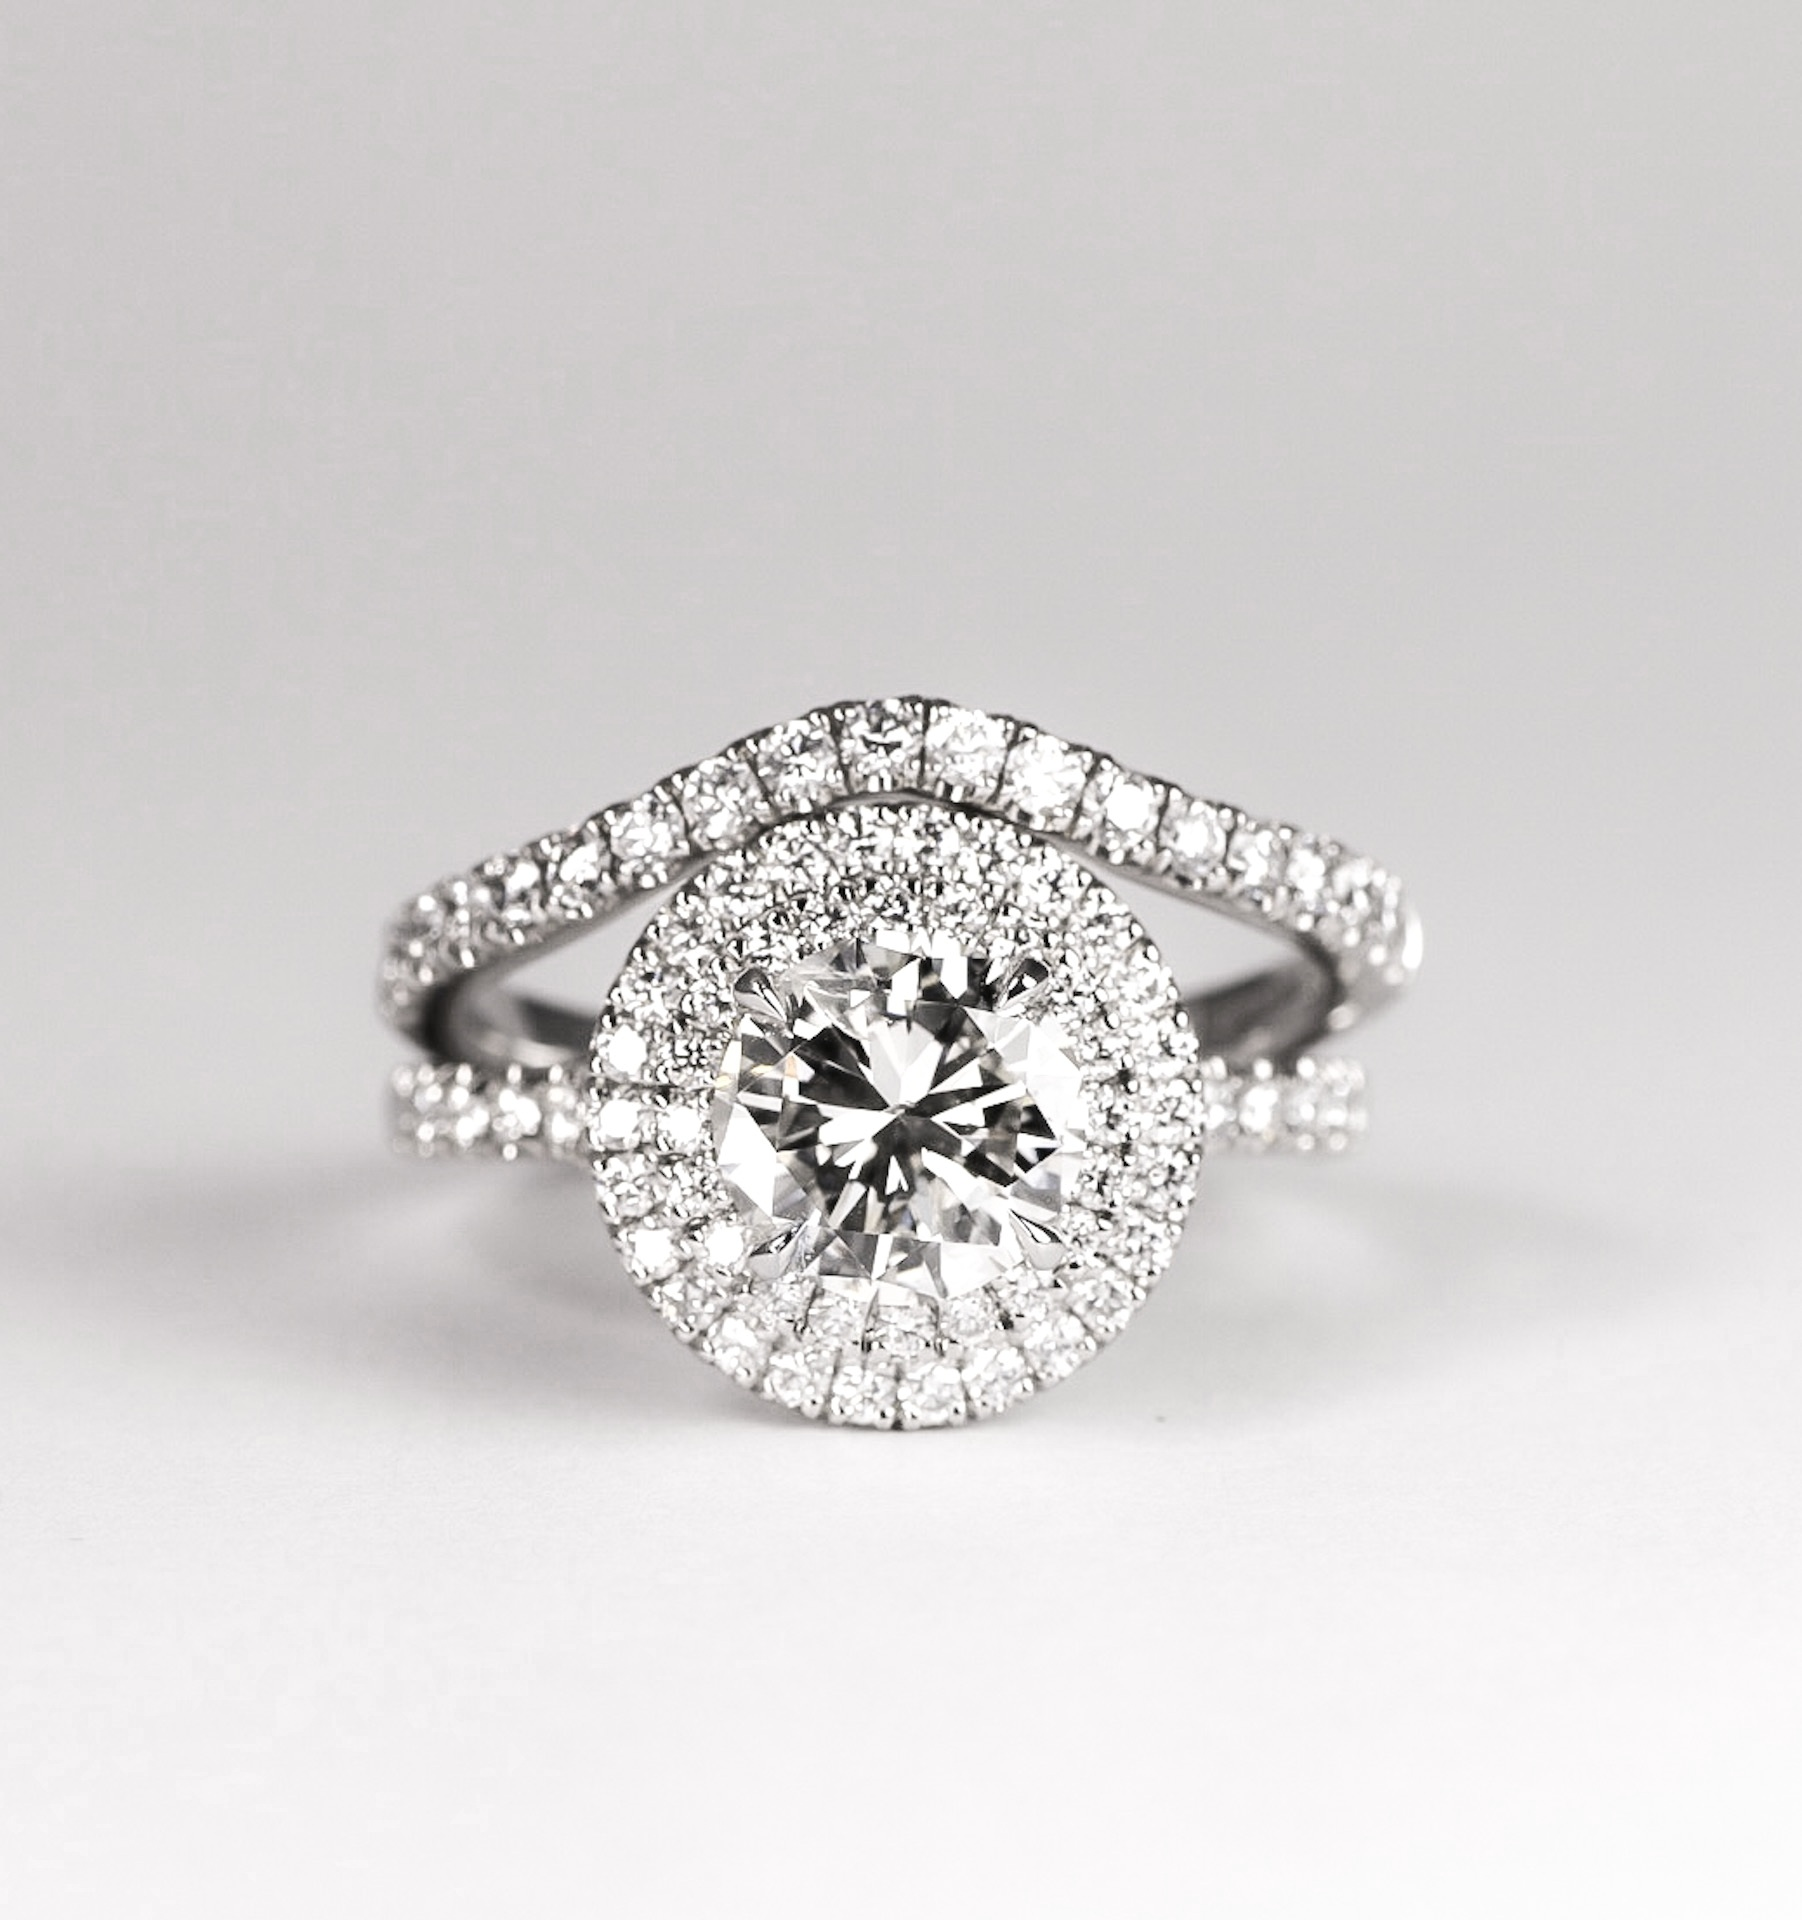 Platinum mounted double halo cluster ring. Made in Chichester, England.